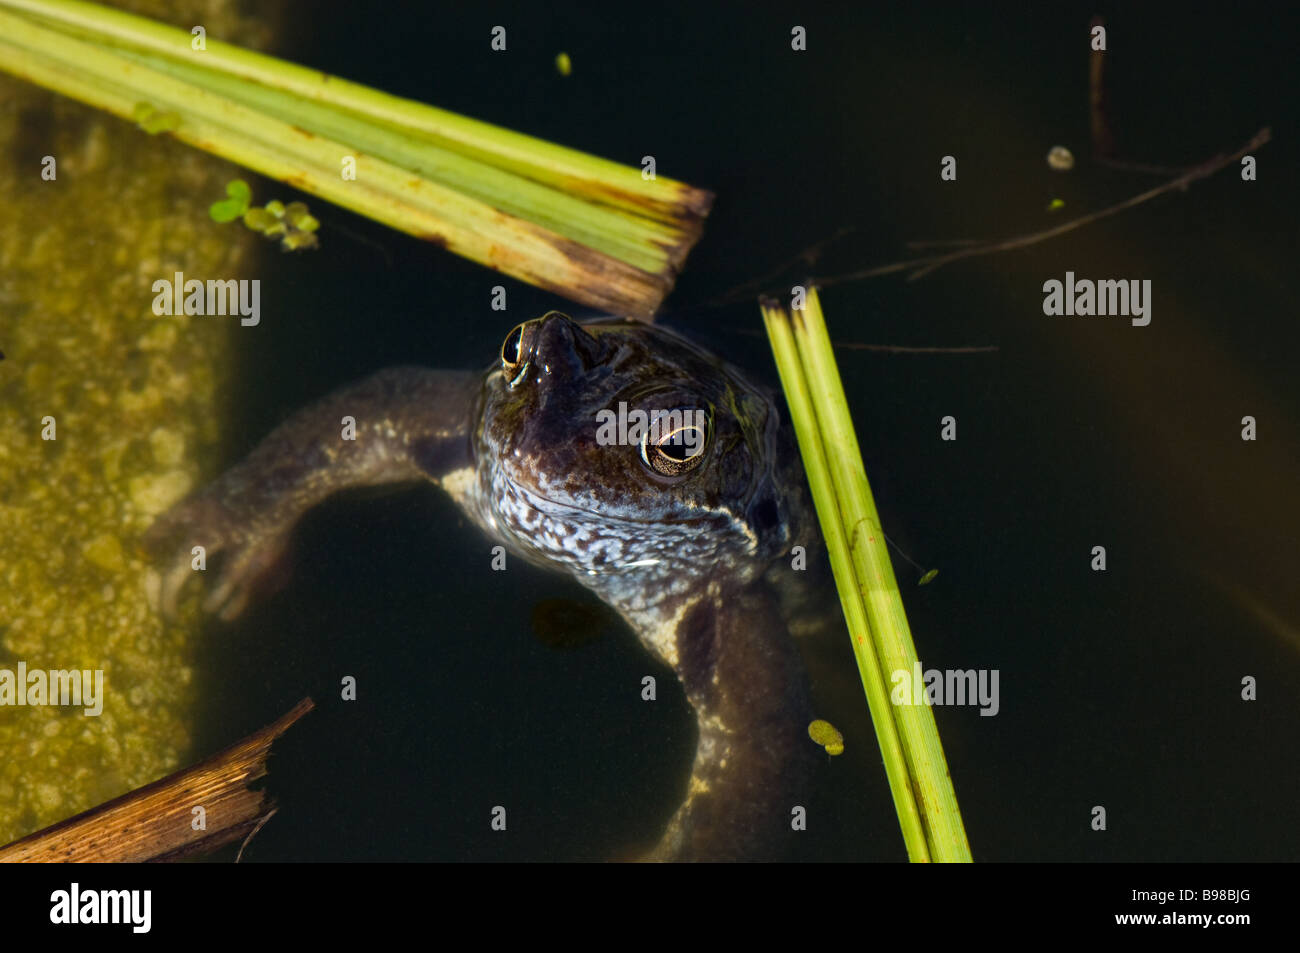 Common adult male frog emerging from a pond during mating. Stock Photo